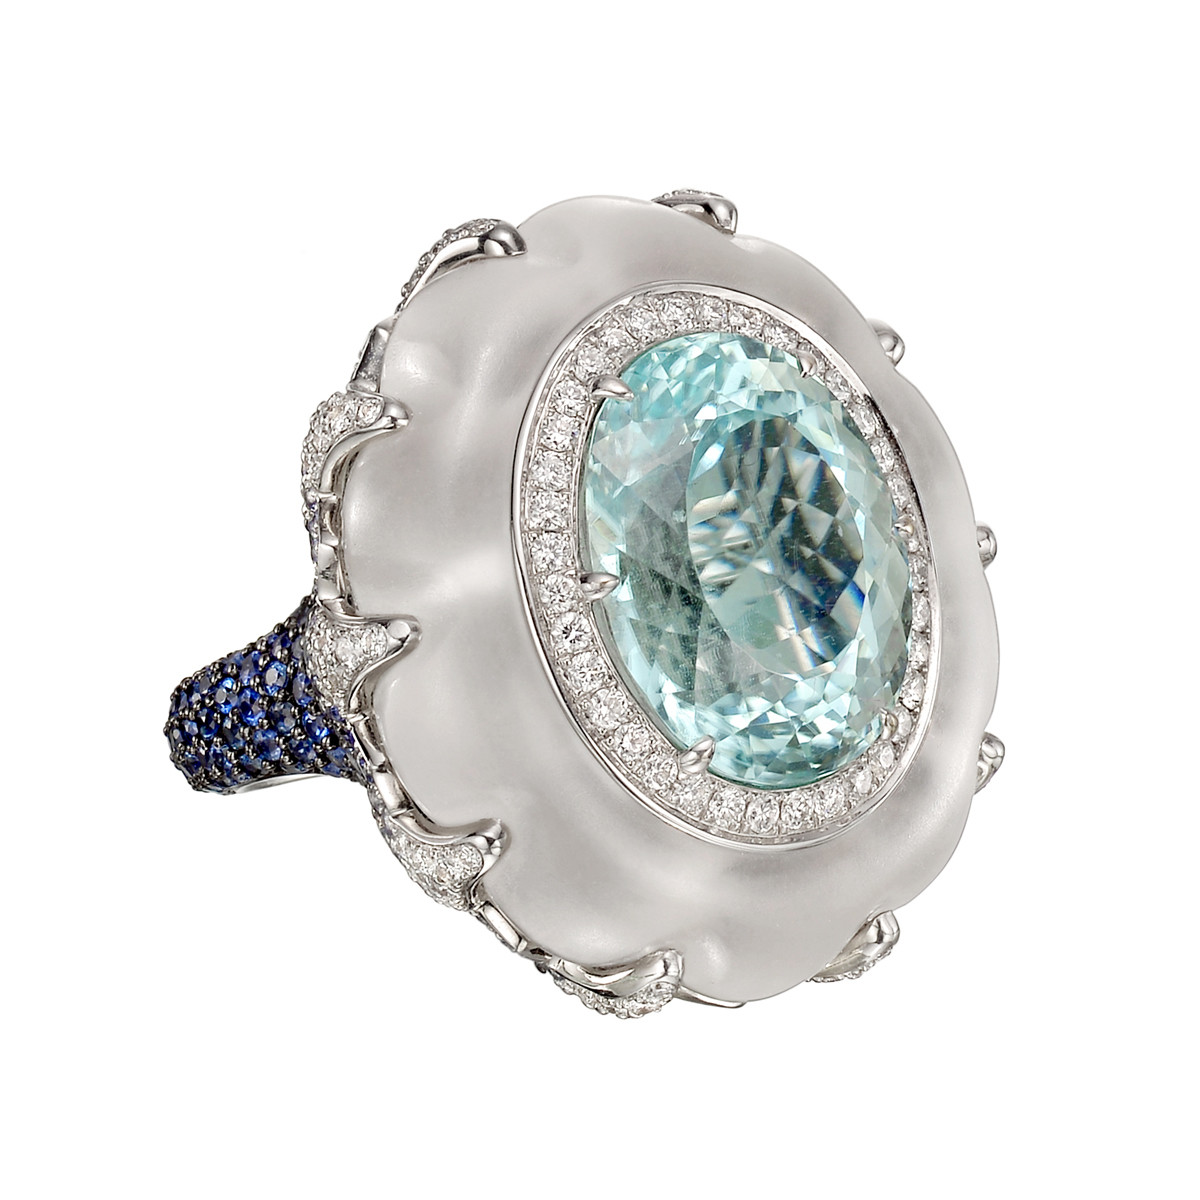 15.03ct Paraiba Tourmaline Cocktail Ring